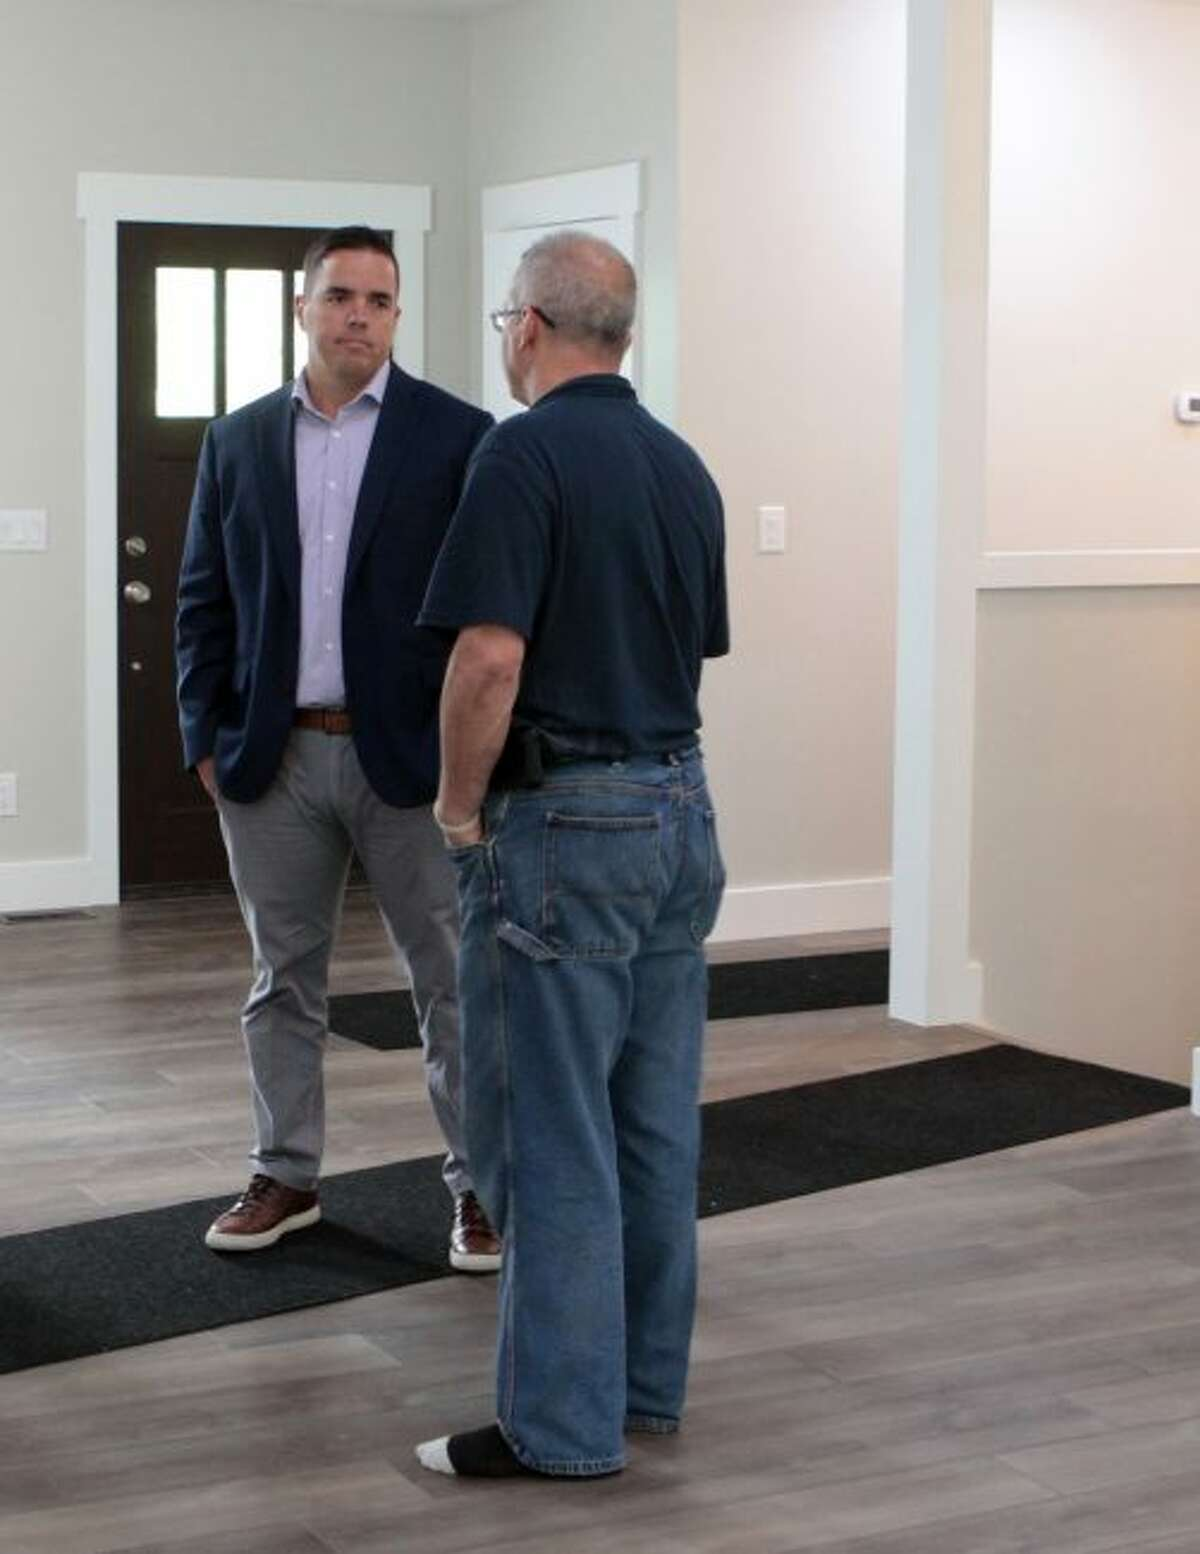 Construction trades teacher Doug Sickles (front) shows MOISD superintendent Steve Locke around the new home built by local students. (Pioneer photo/Taylor Fussman)